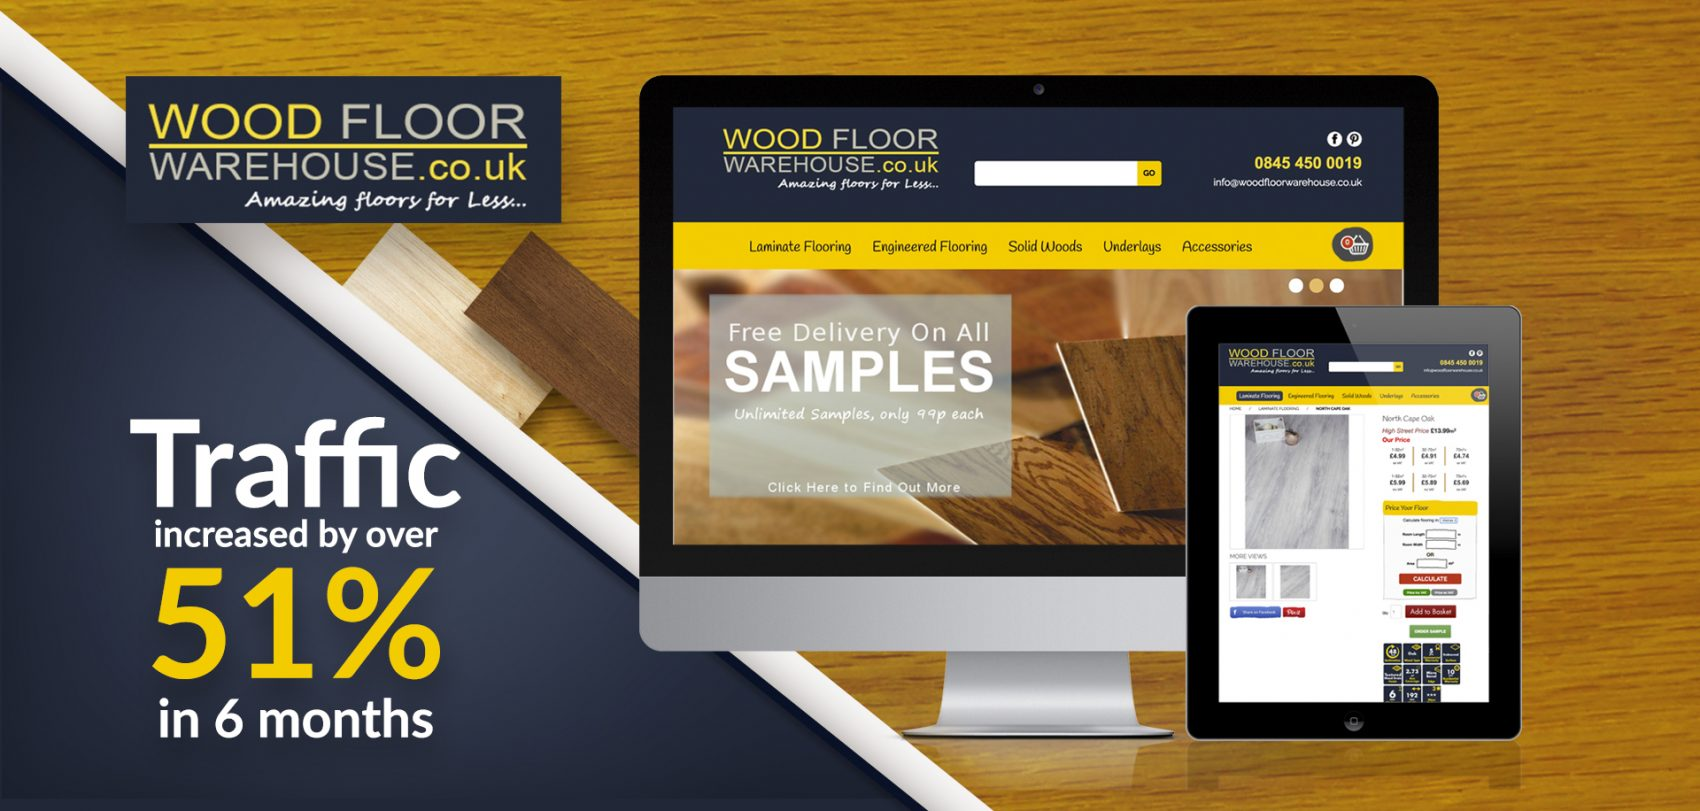 woodfloor warehouse seo company